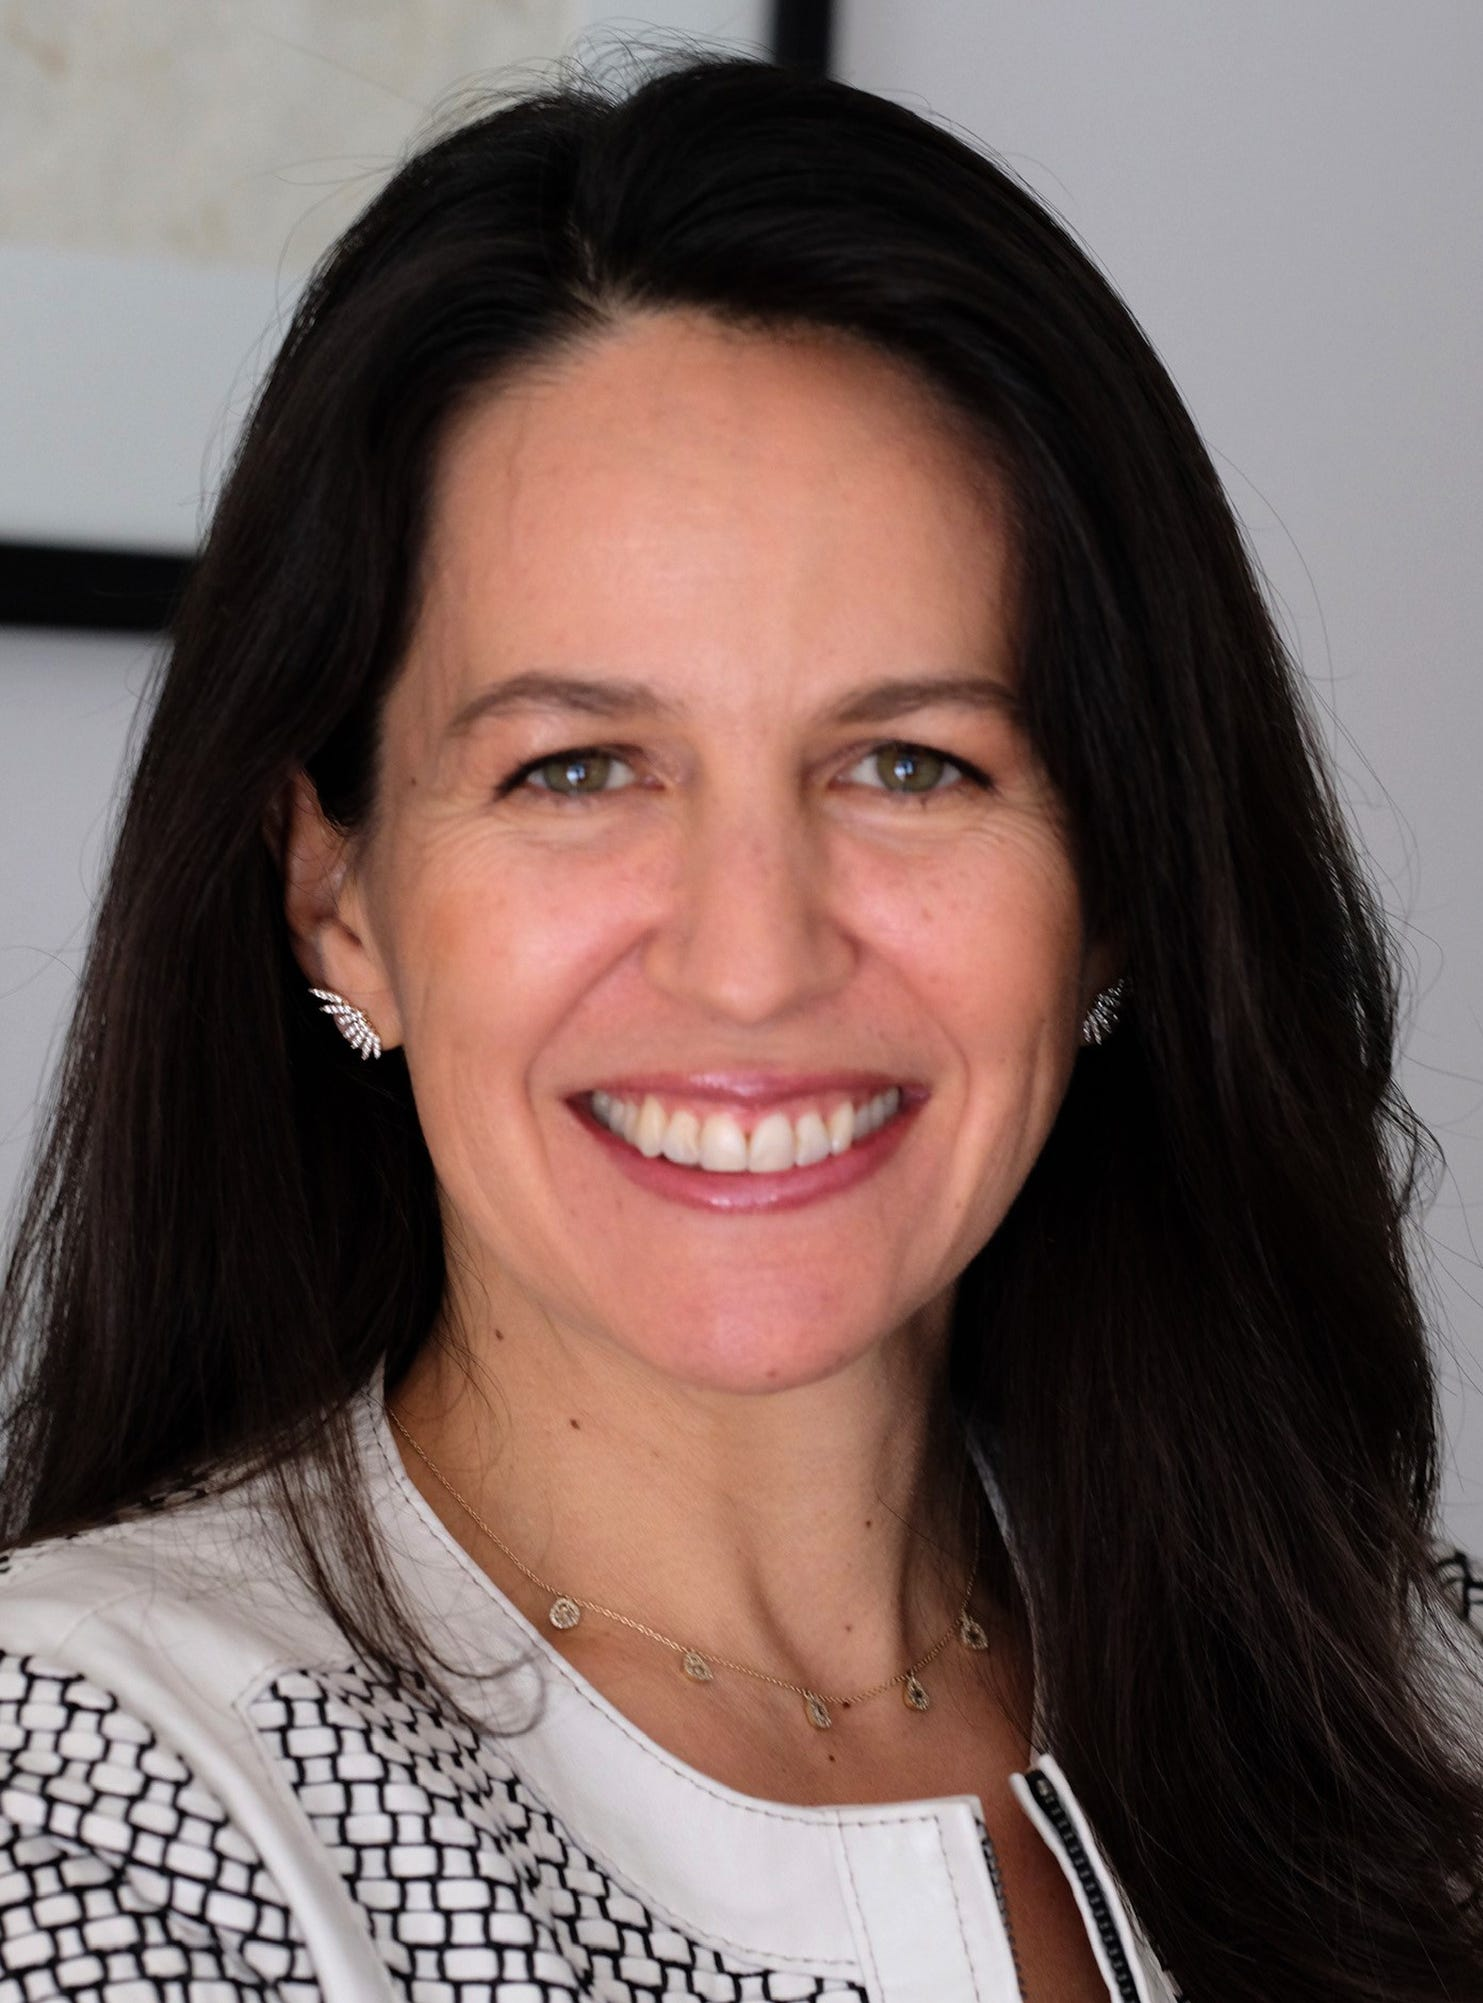 """Marcela Escobari is a senior fellow at Brookings Institution, a public policy research organization based in Washington, D.C. """"We say there is a skills gap and yet training is going down,"""" Escobari said."""